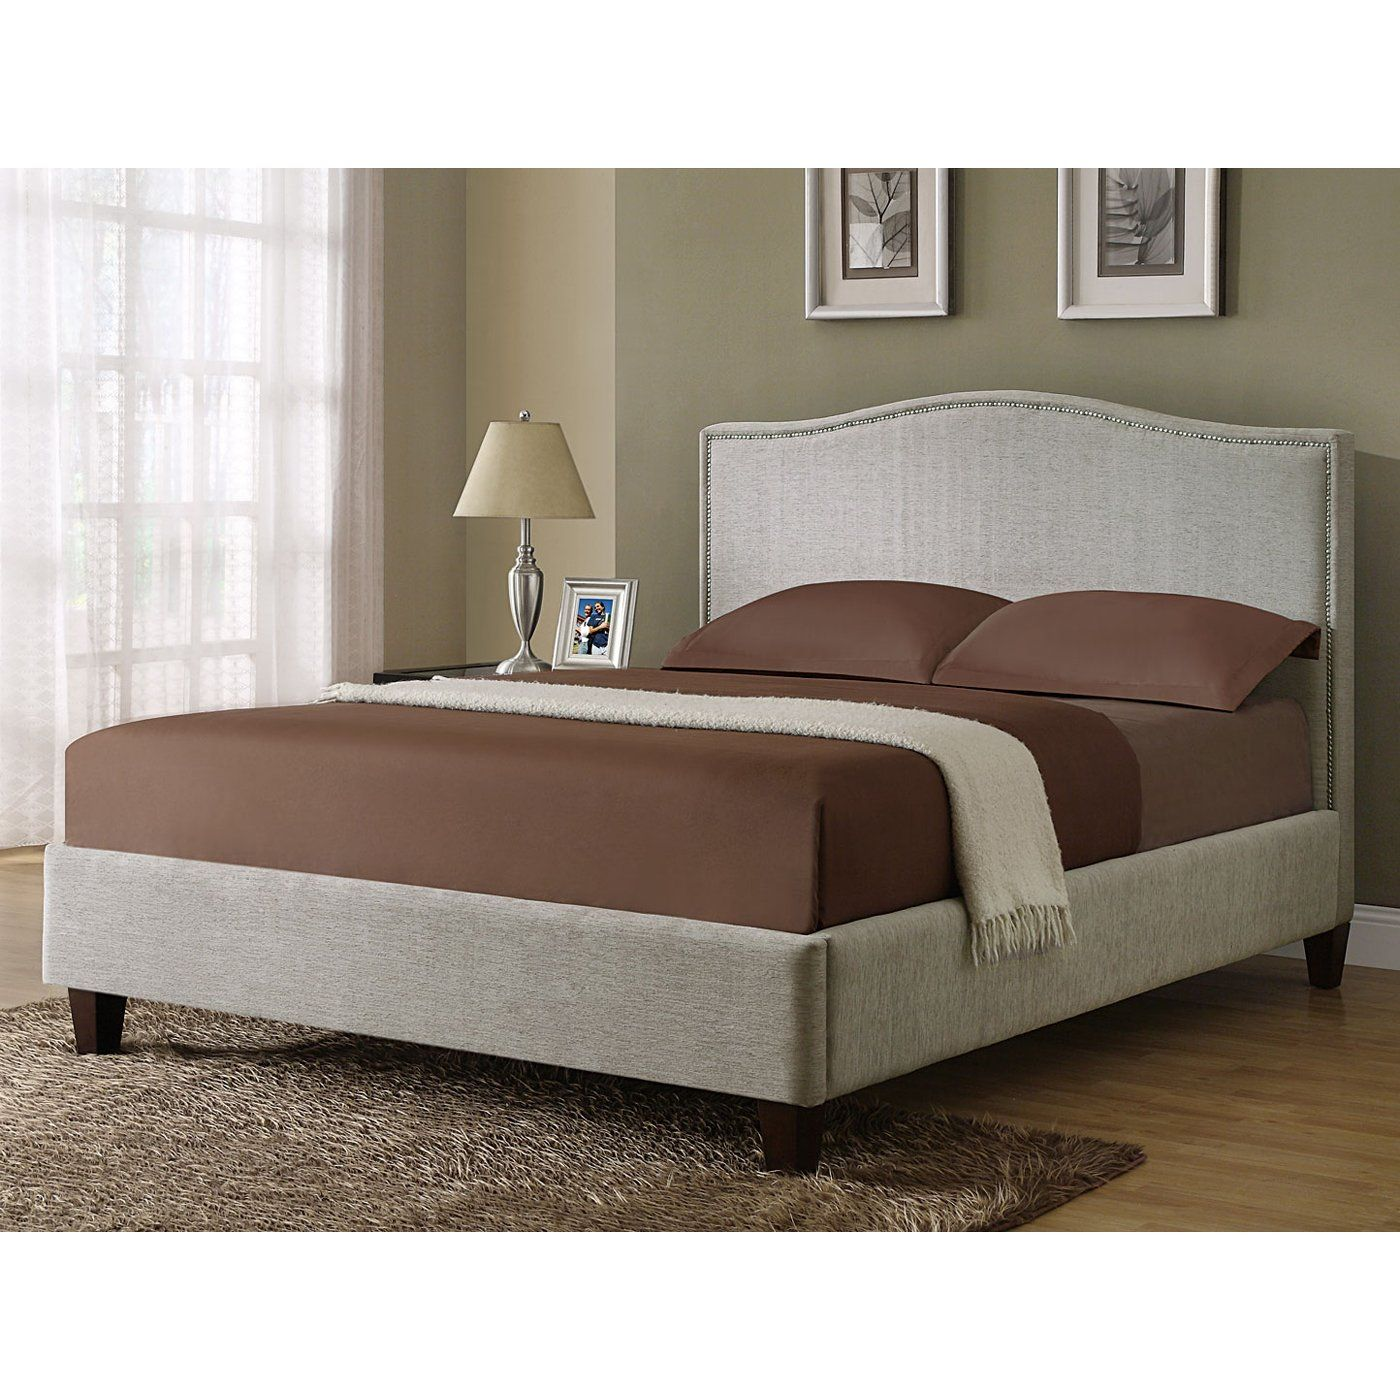 Monarch Specialties I 5901Q Queen Size Bed Lowe's Canada